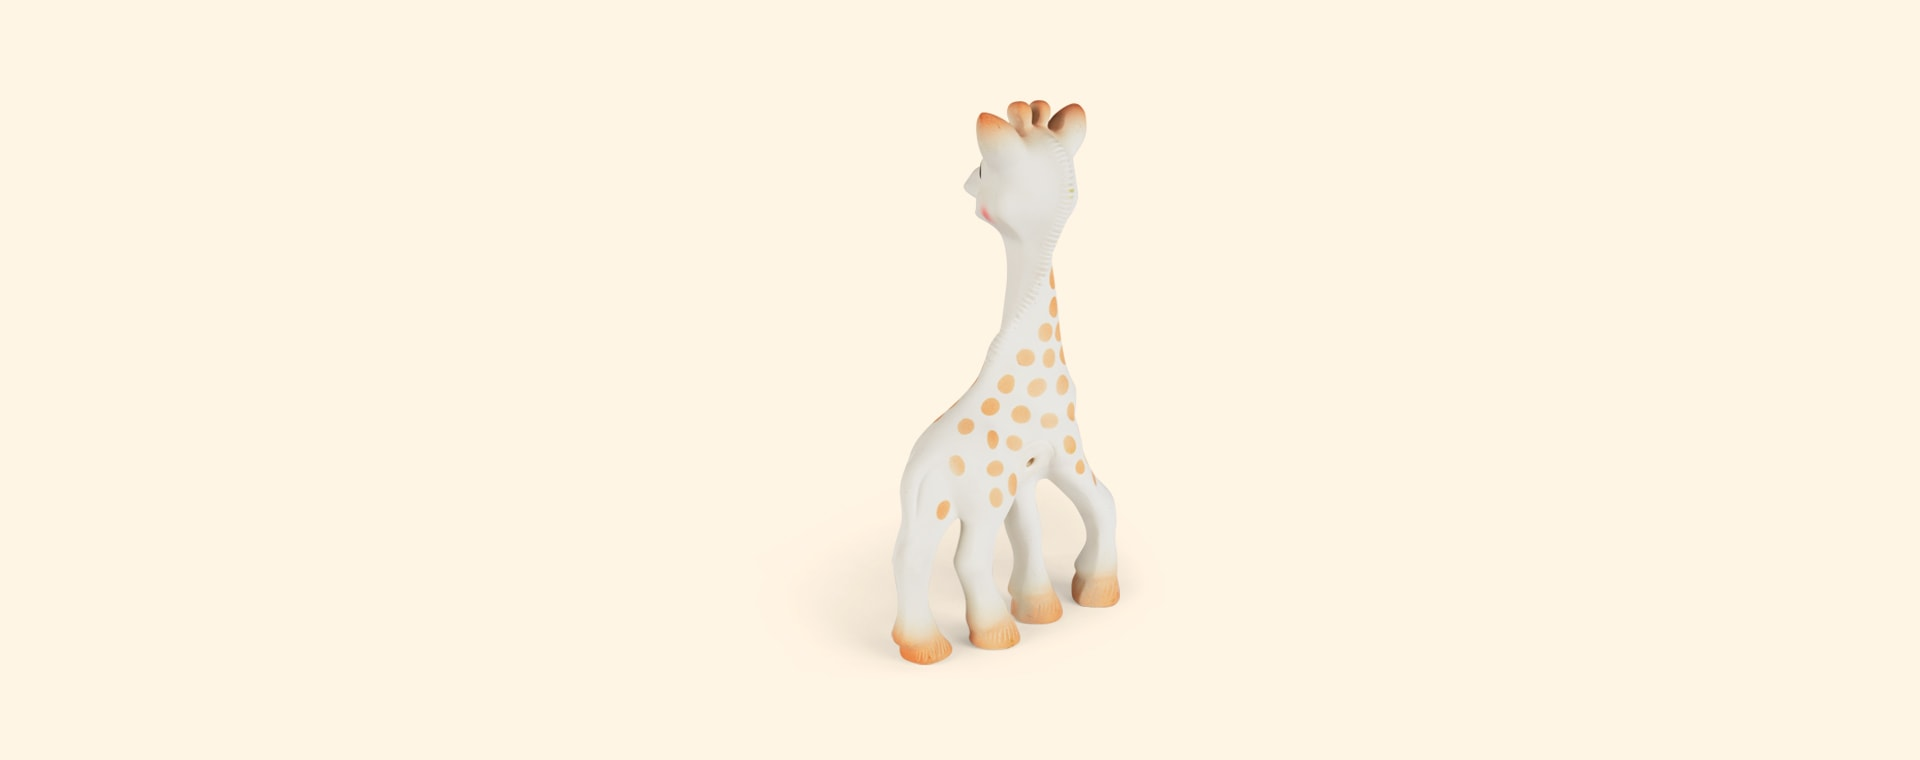 Neutral Sophie la Girafe Original Sophie Toy